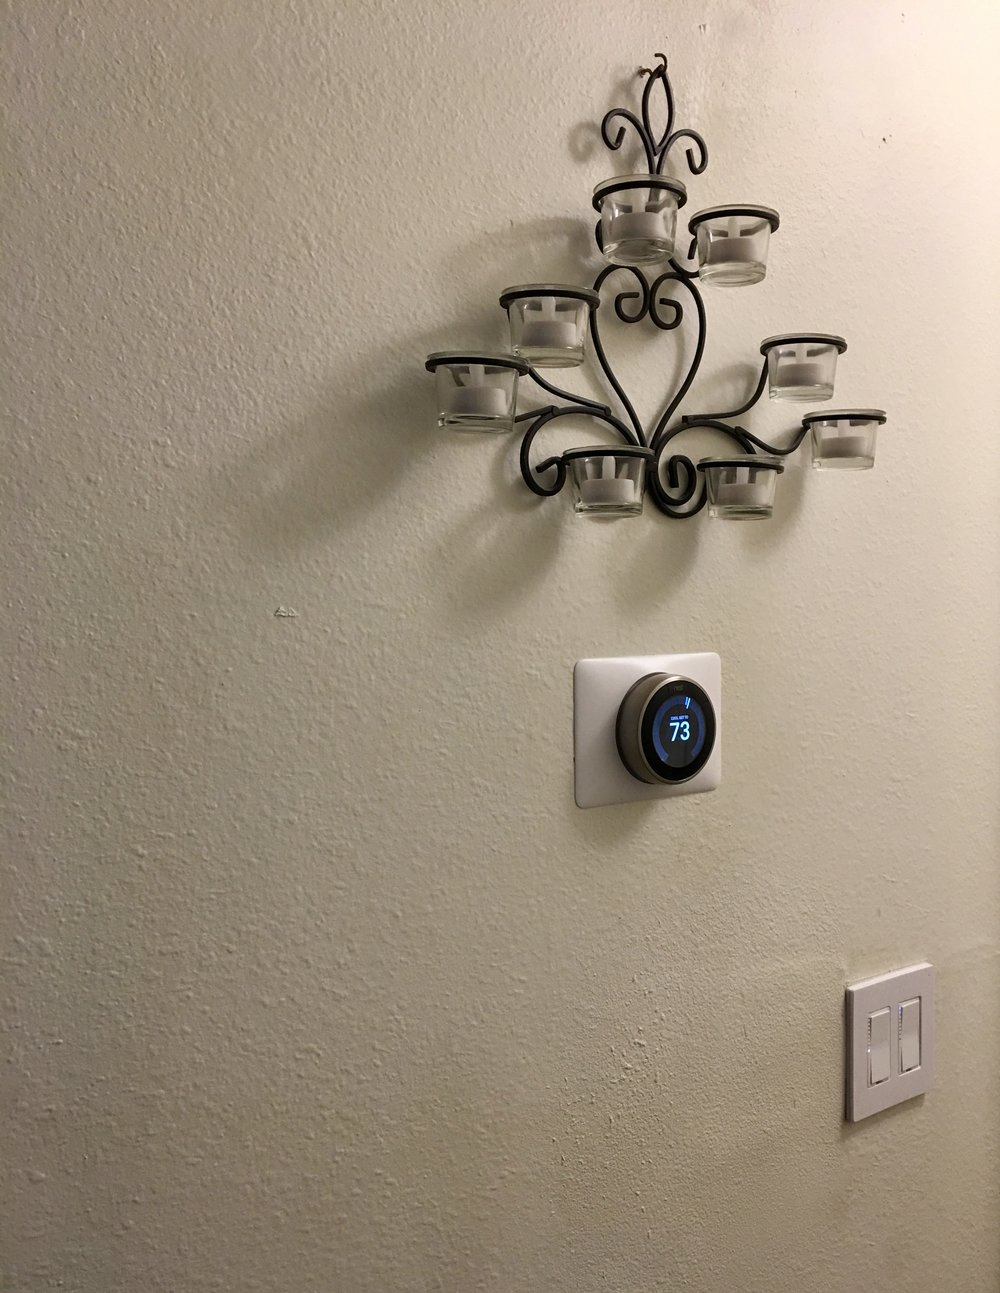 Entryway - Insteon switches and Nest Thermostat